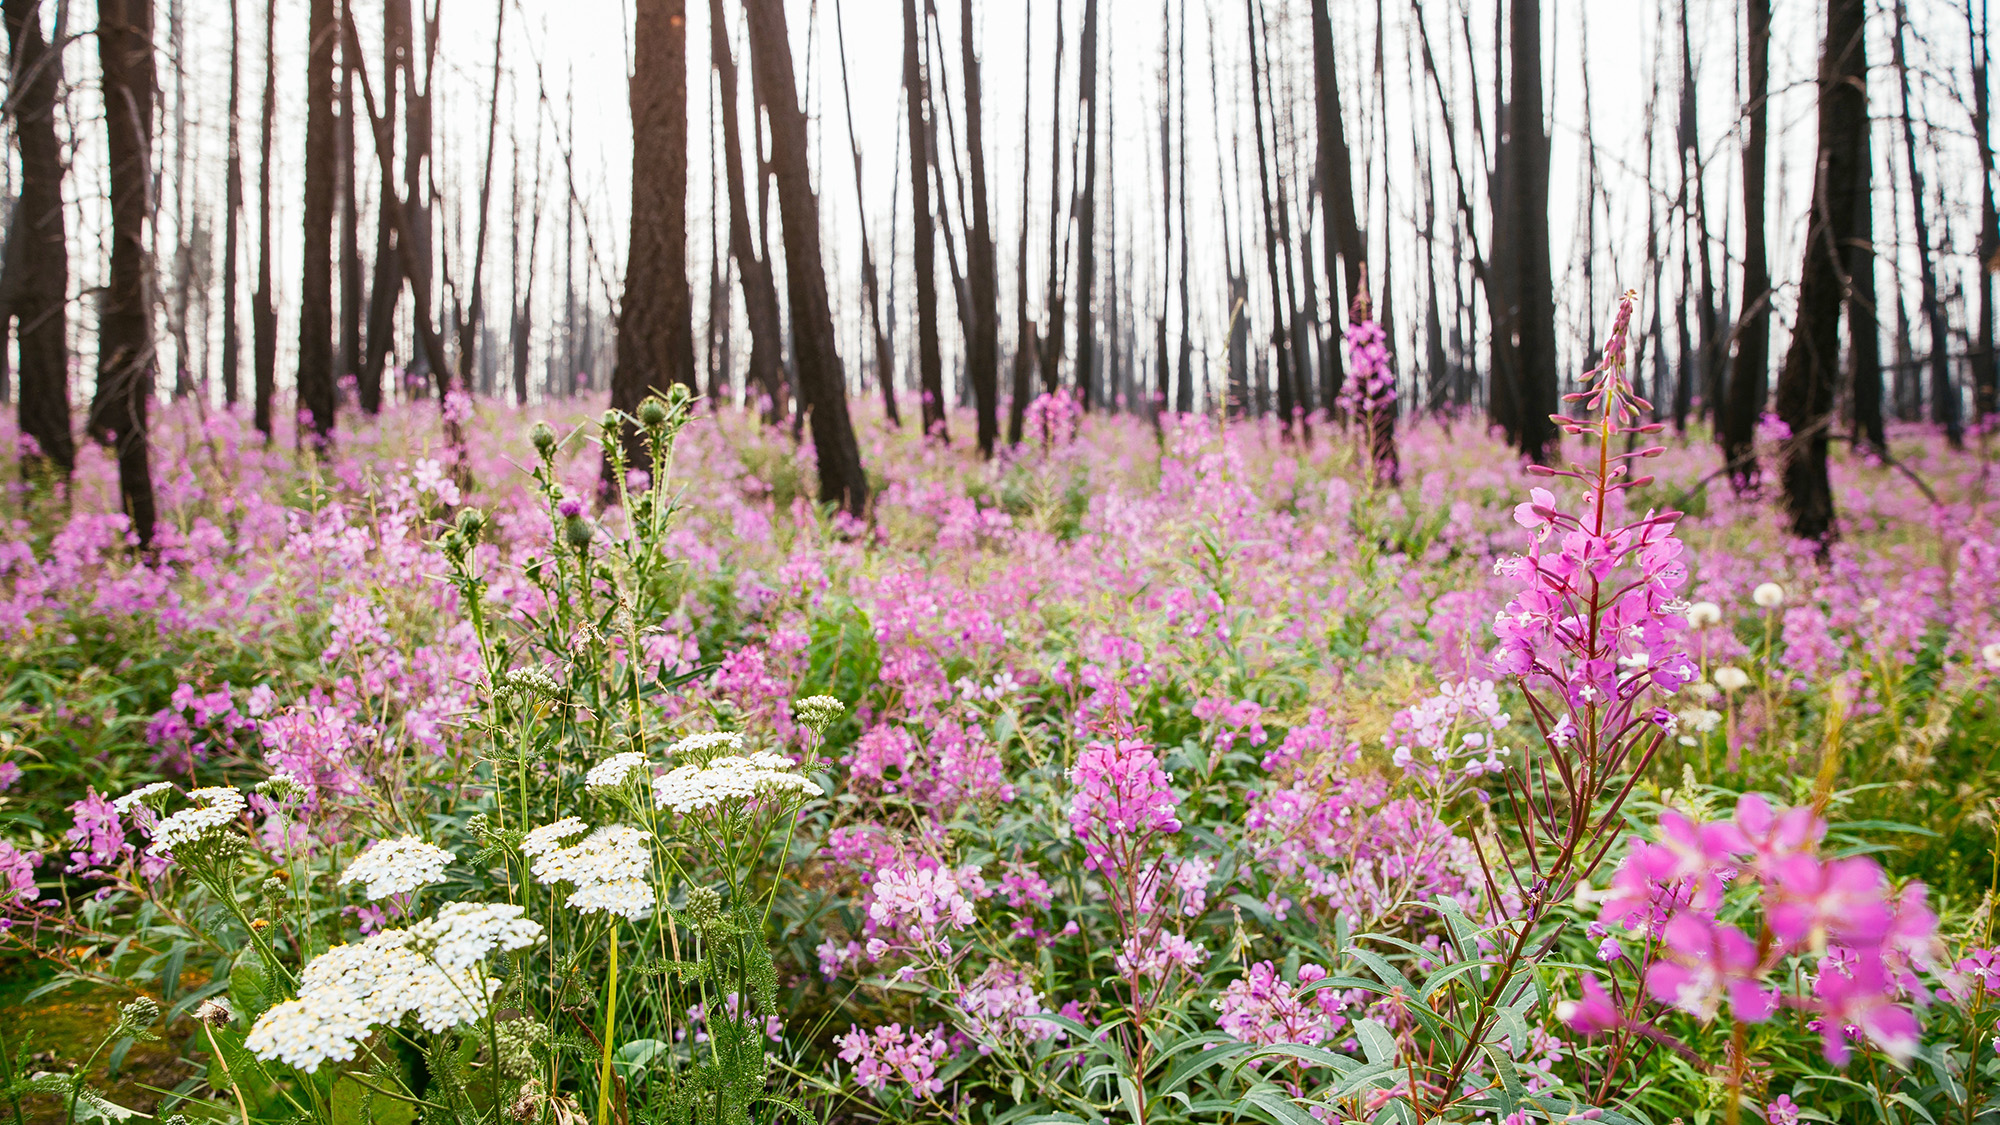 Fireweed in a black enchanted snag forest